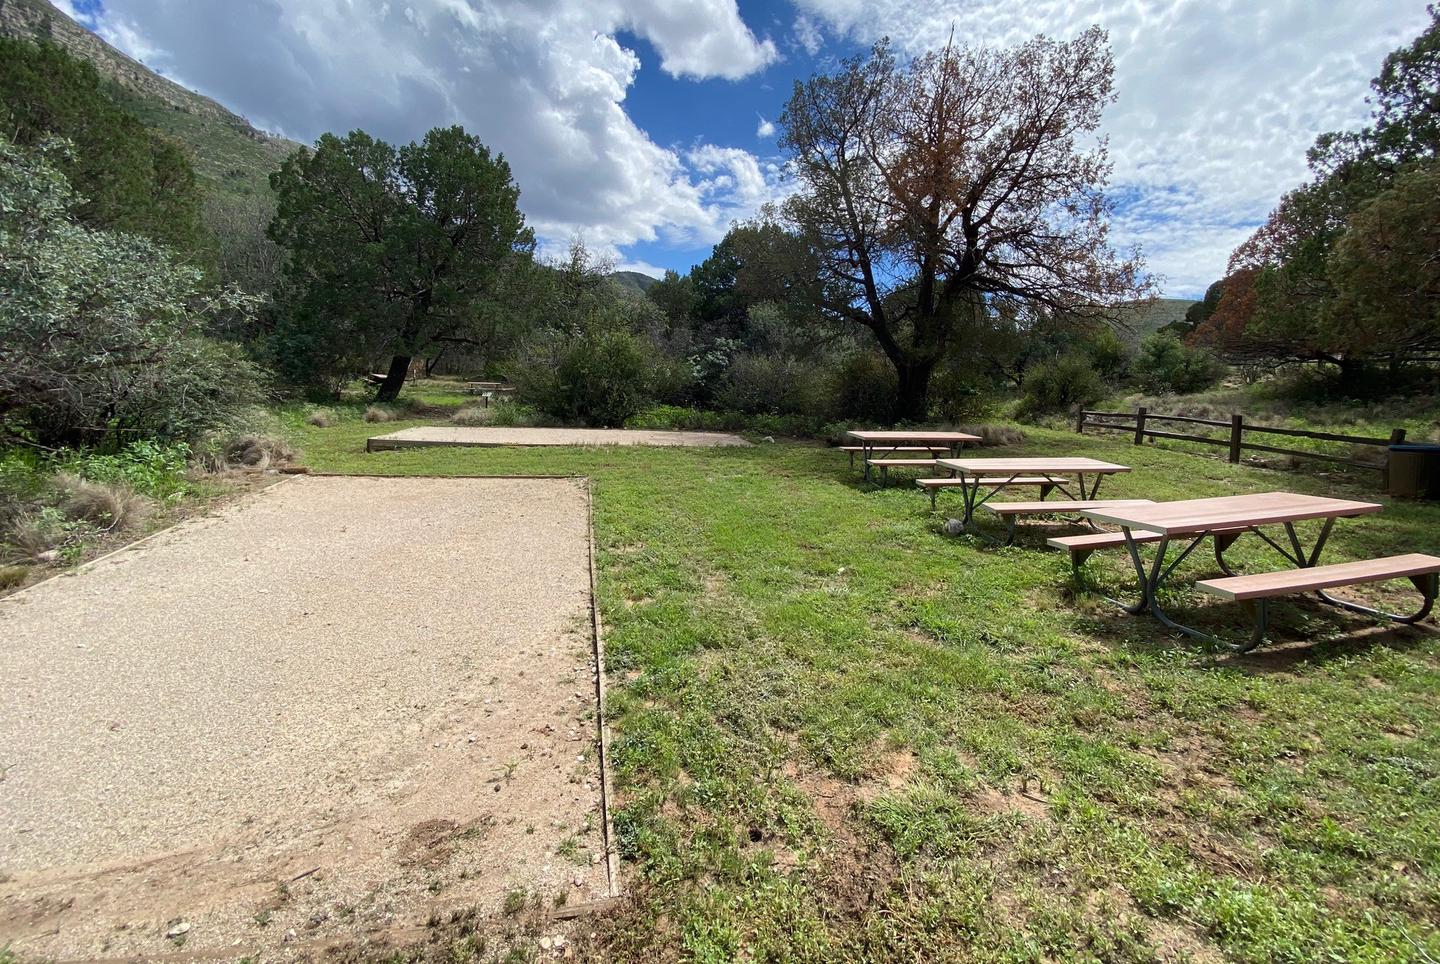 Dog Canyon Group site has two large tent pads and three picnic tables.  The site is surrounded by vegetation and a mature trees.Dog Canyon Group Campsite.